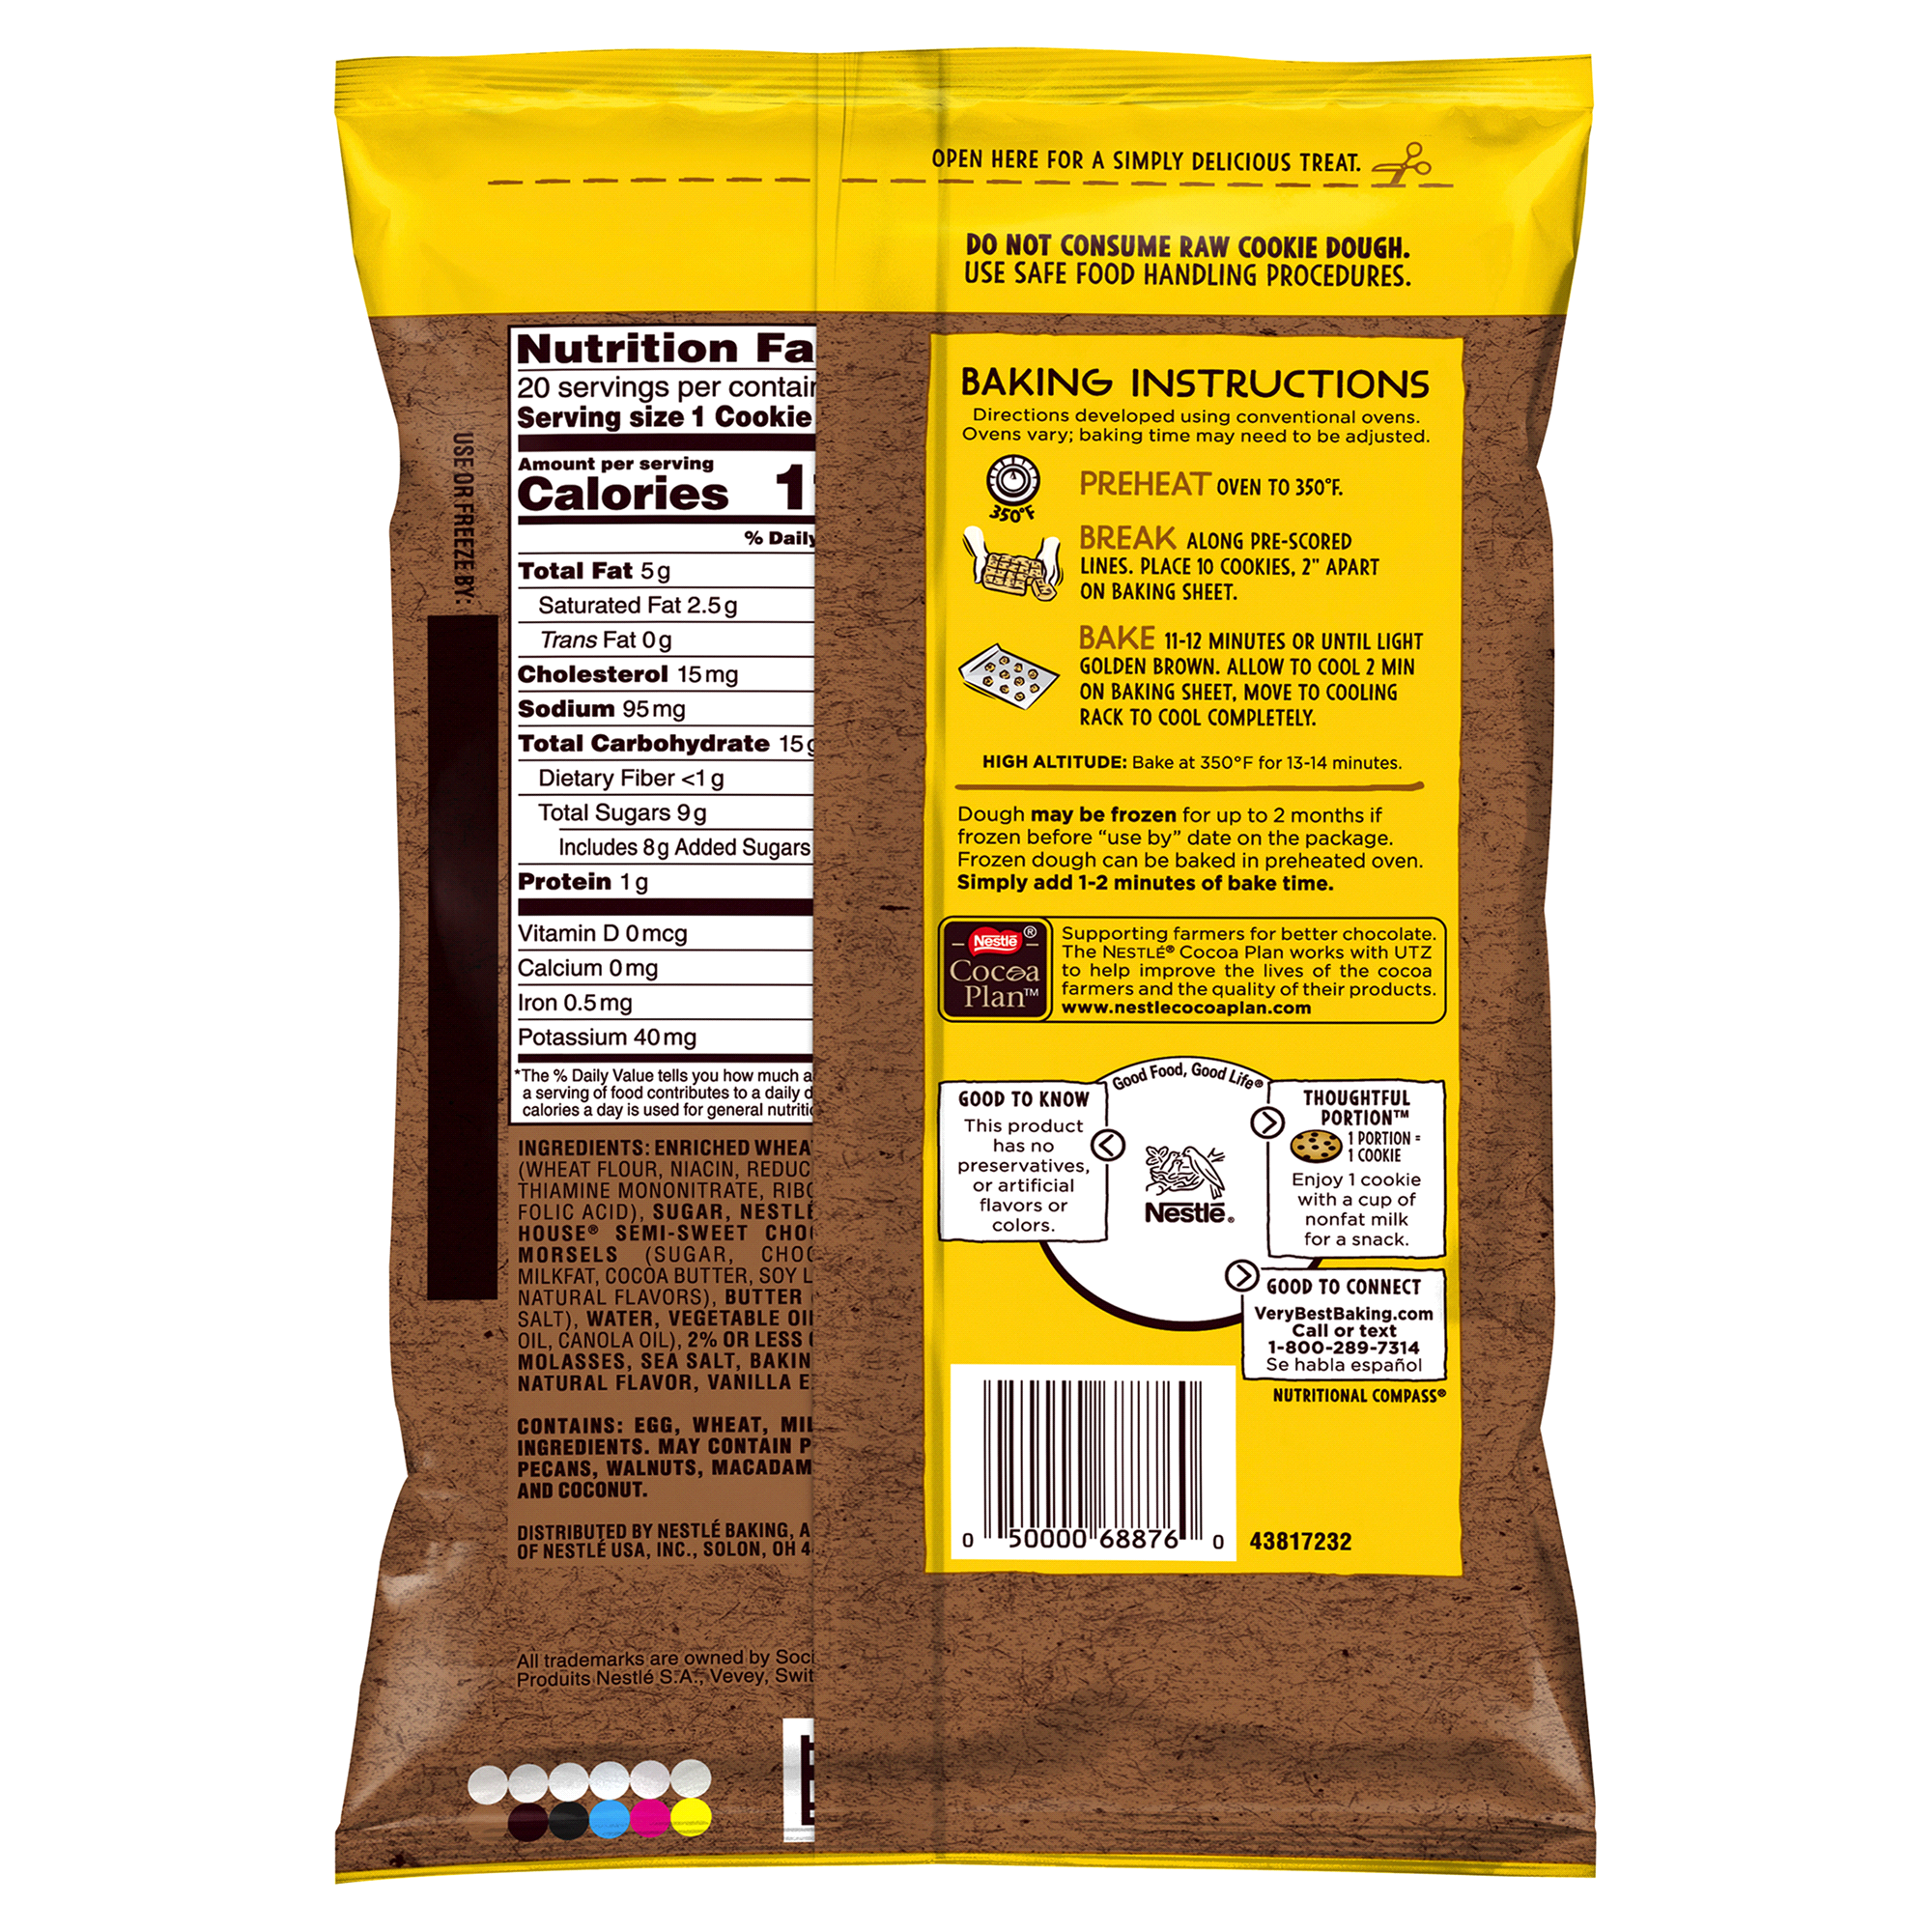 Nestle Toll House Simply Delicious Chocolate Chip Cookie Dough 18 Oz